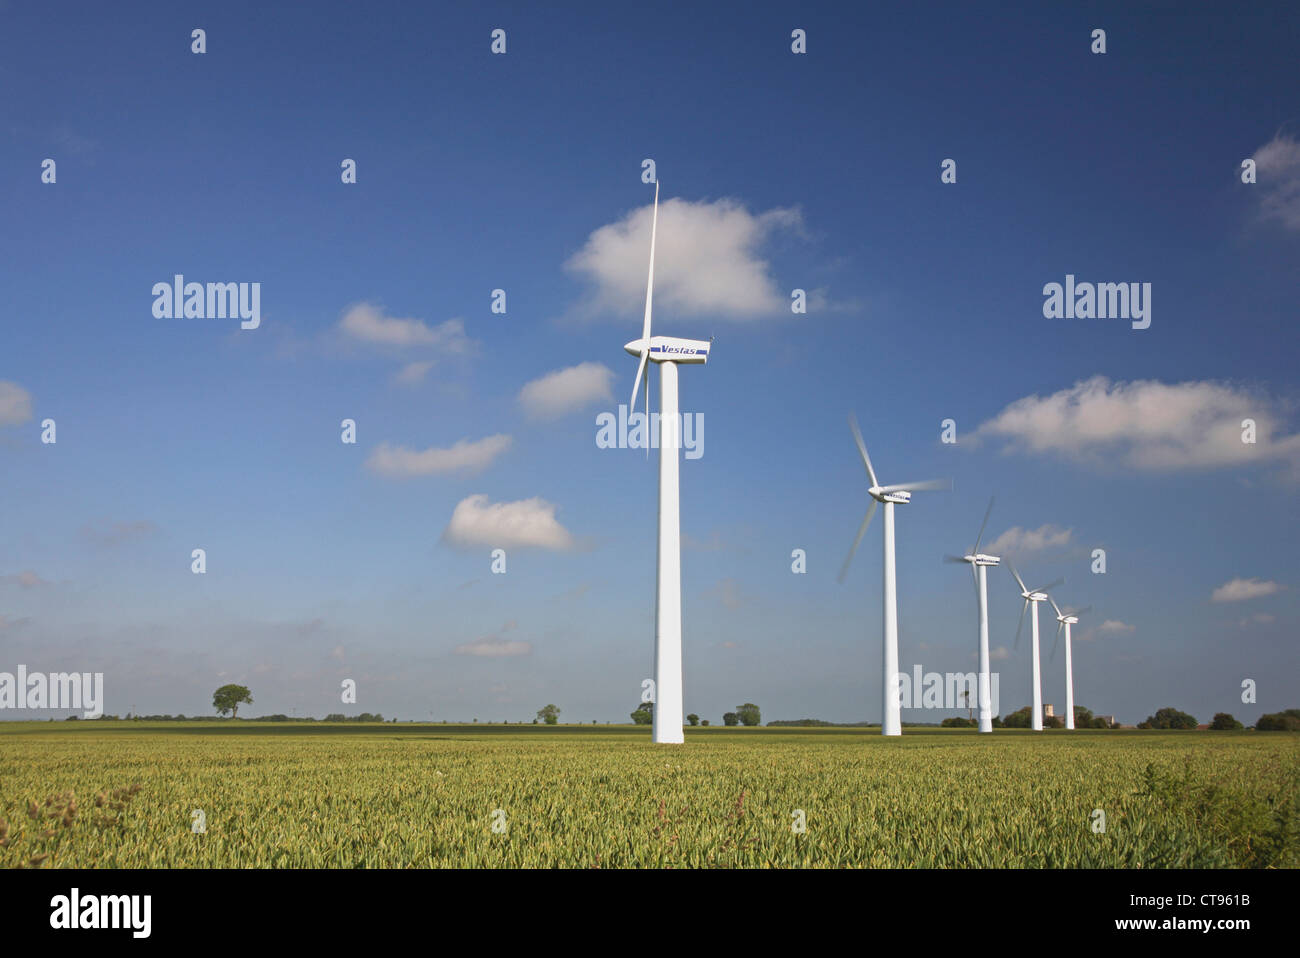 Inland wind turbines in action at West Somerton, Norfolk, England, United Kingdom. - Stock Image